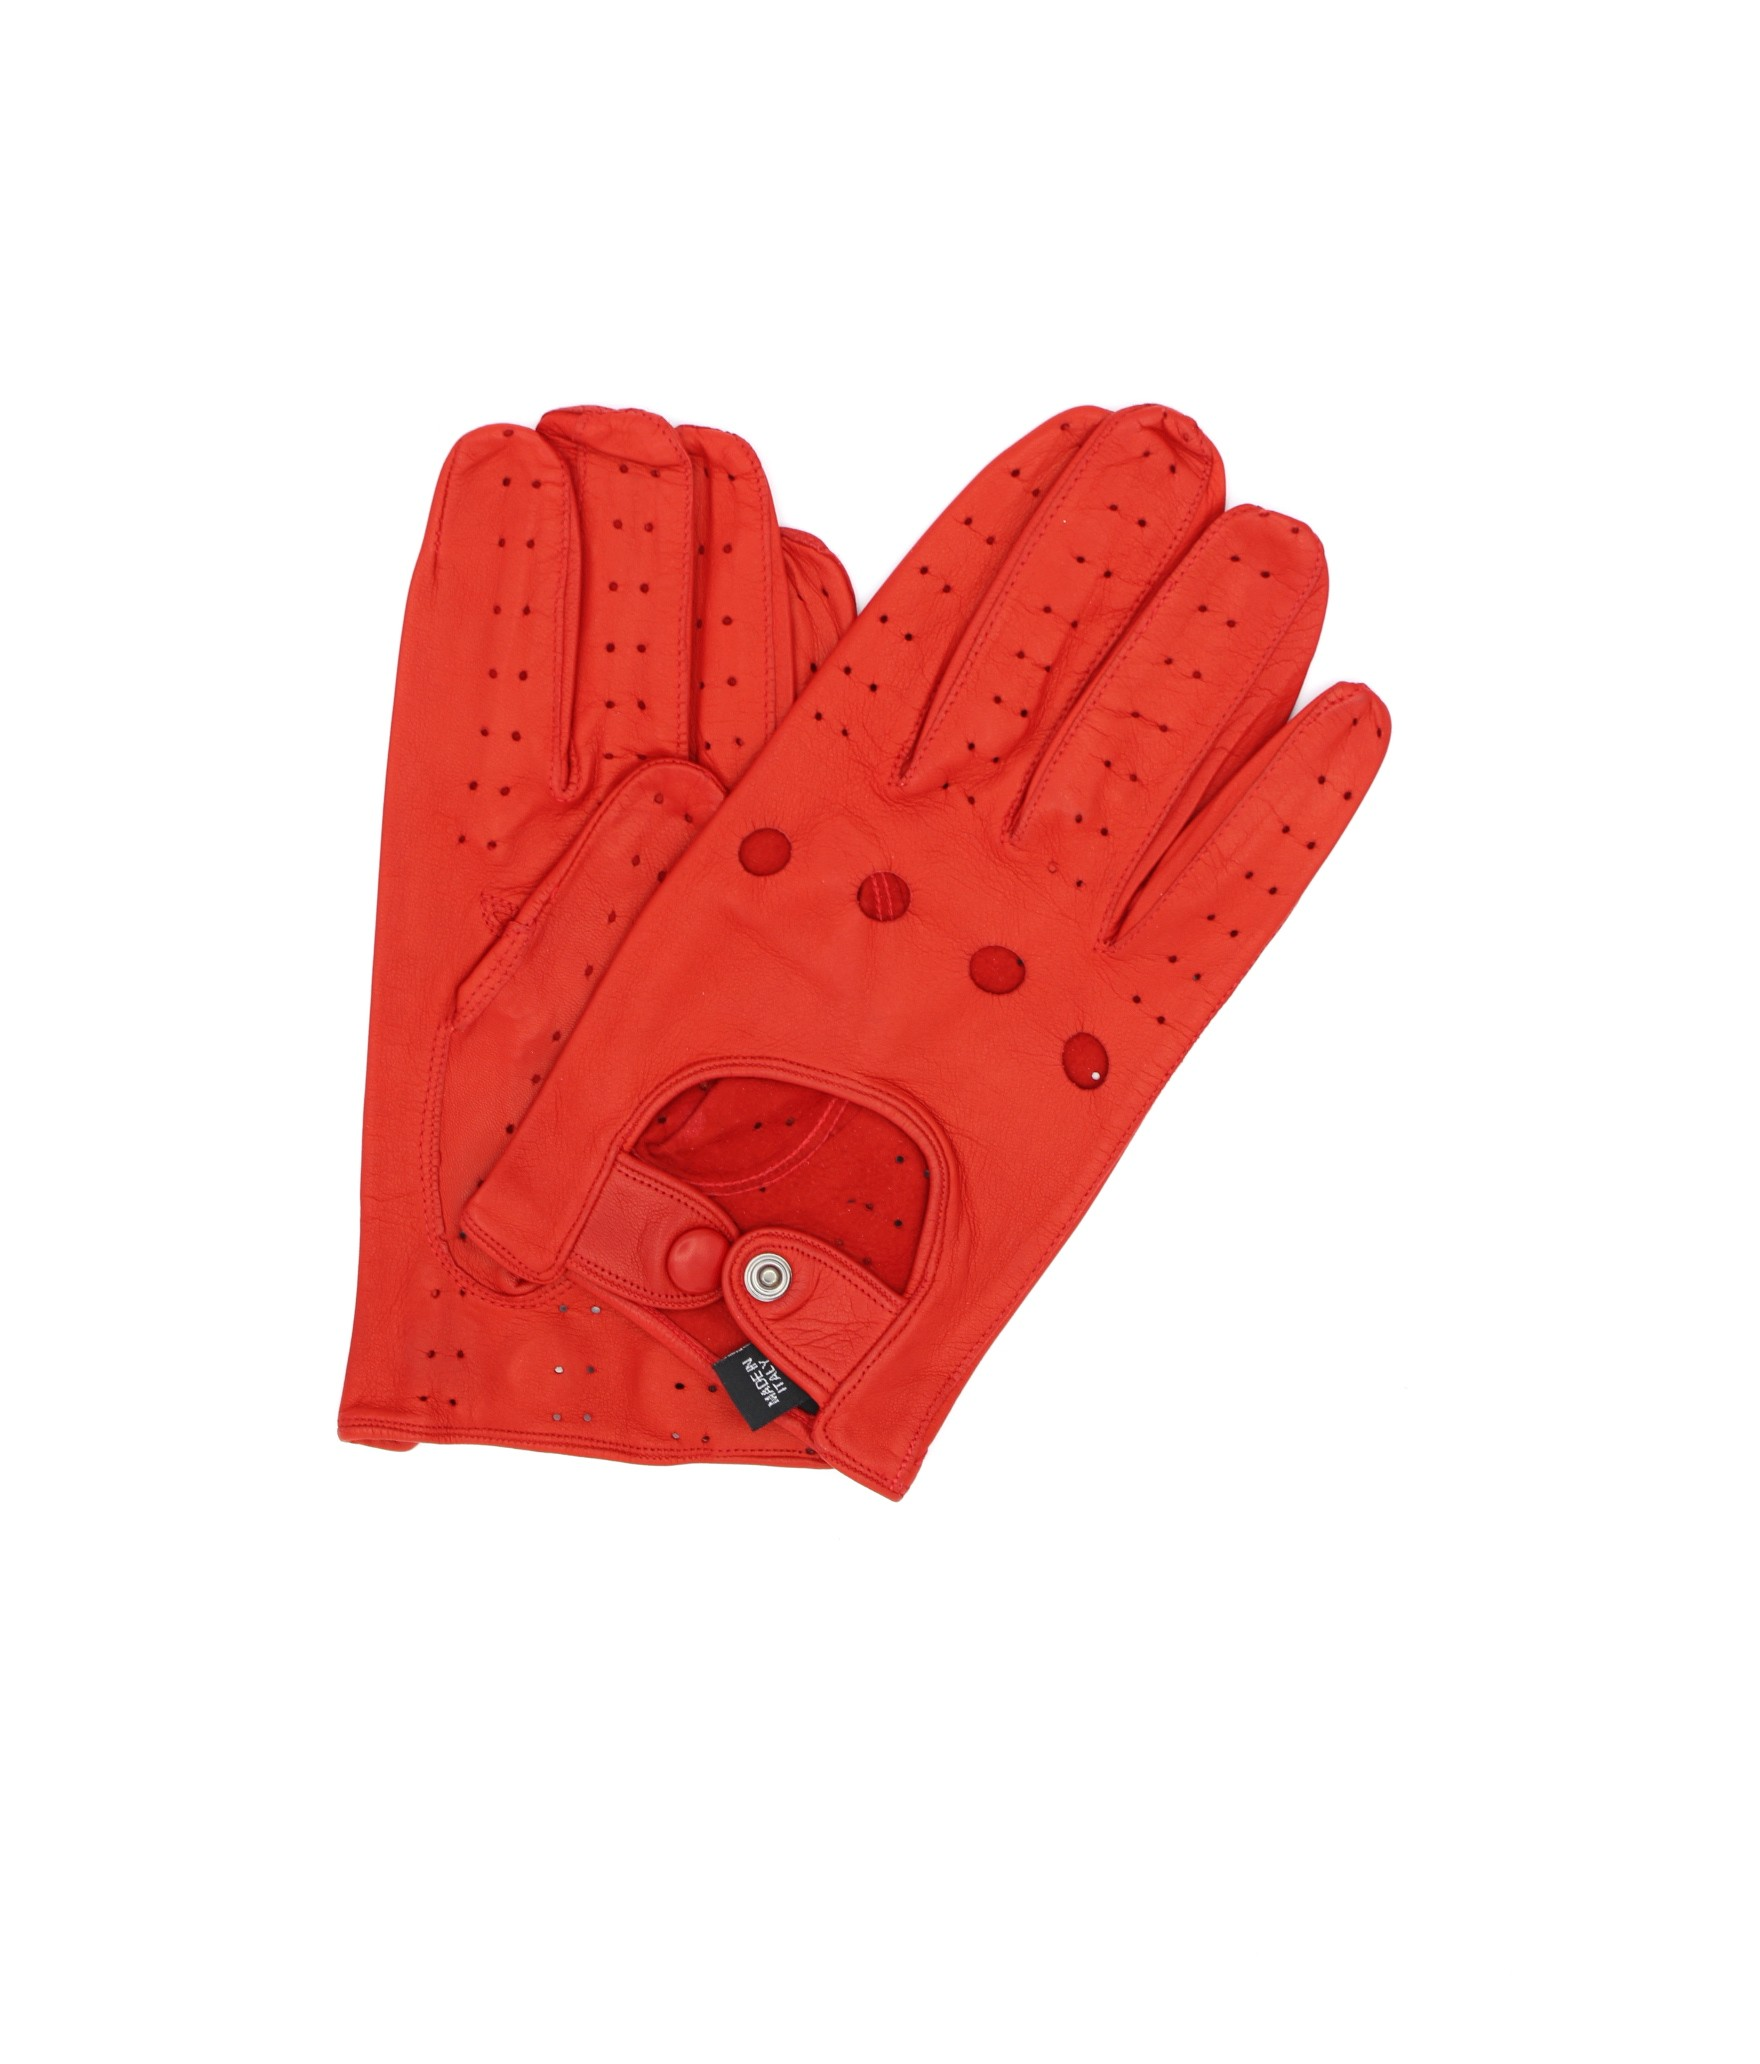 Driving gloves in Nappa leather Red Sermoneta Gloves Leather